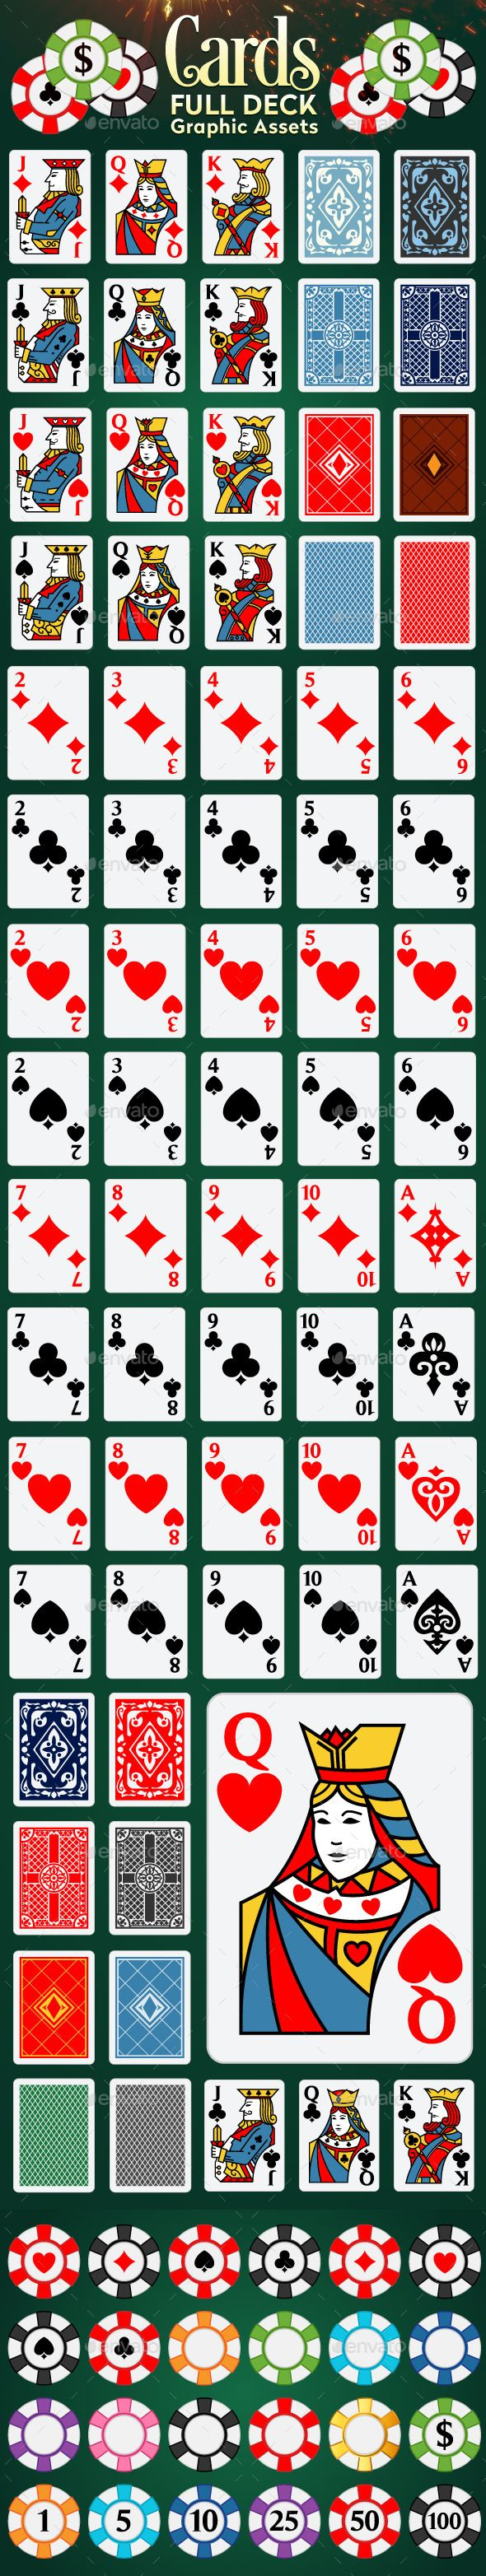 Full Deck Of Playing Cards Playing Card Deck Playing Cards Deck